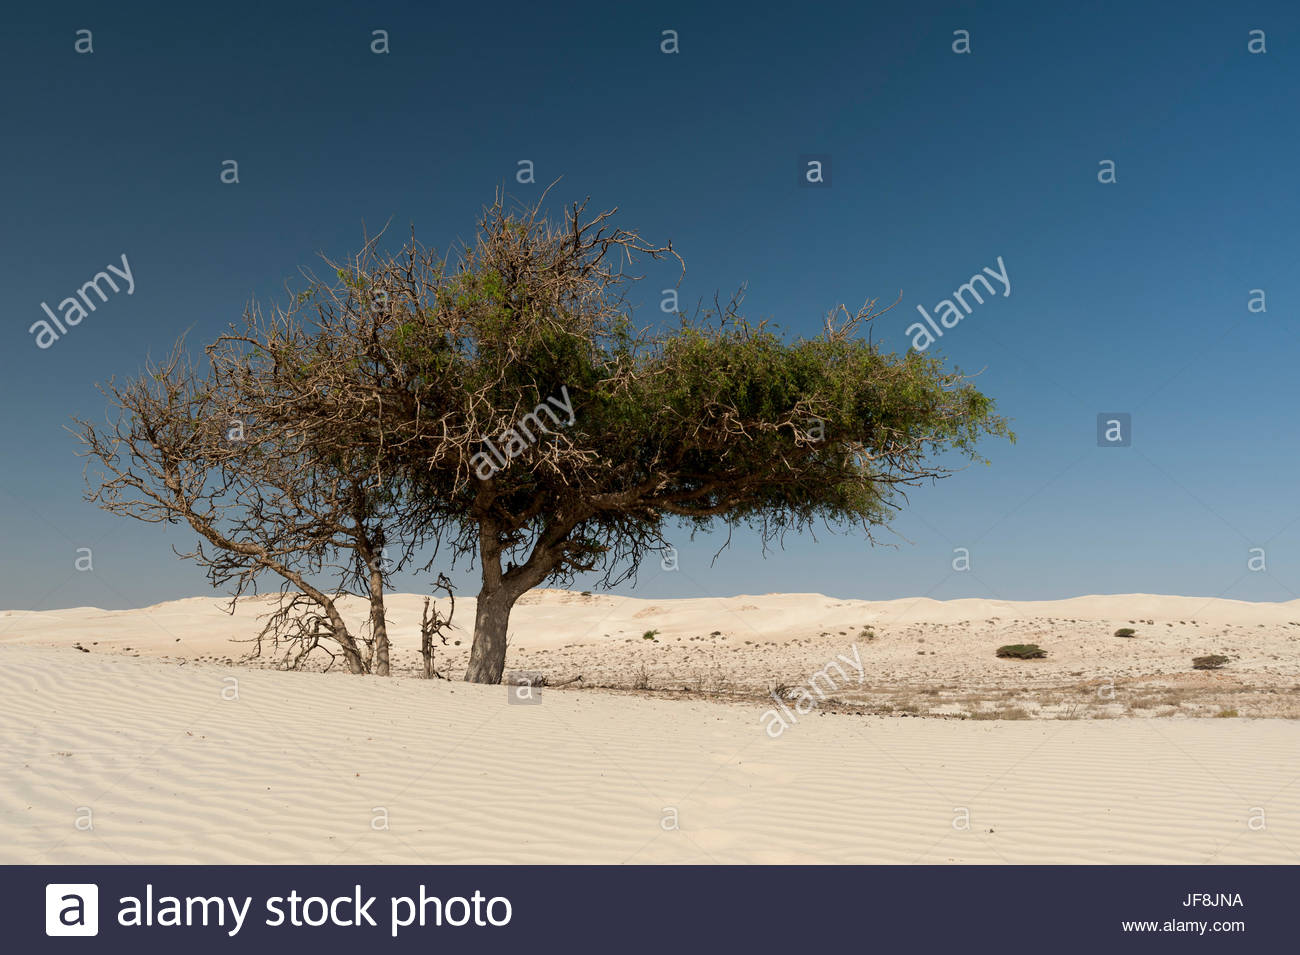 A lone tree growing in white desert sand dunes. - Stock Image